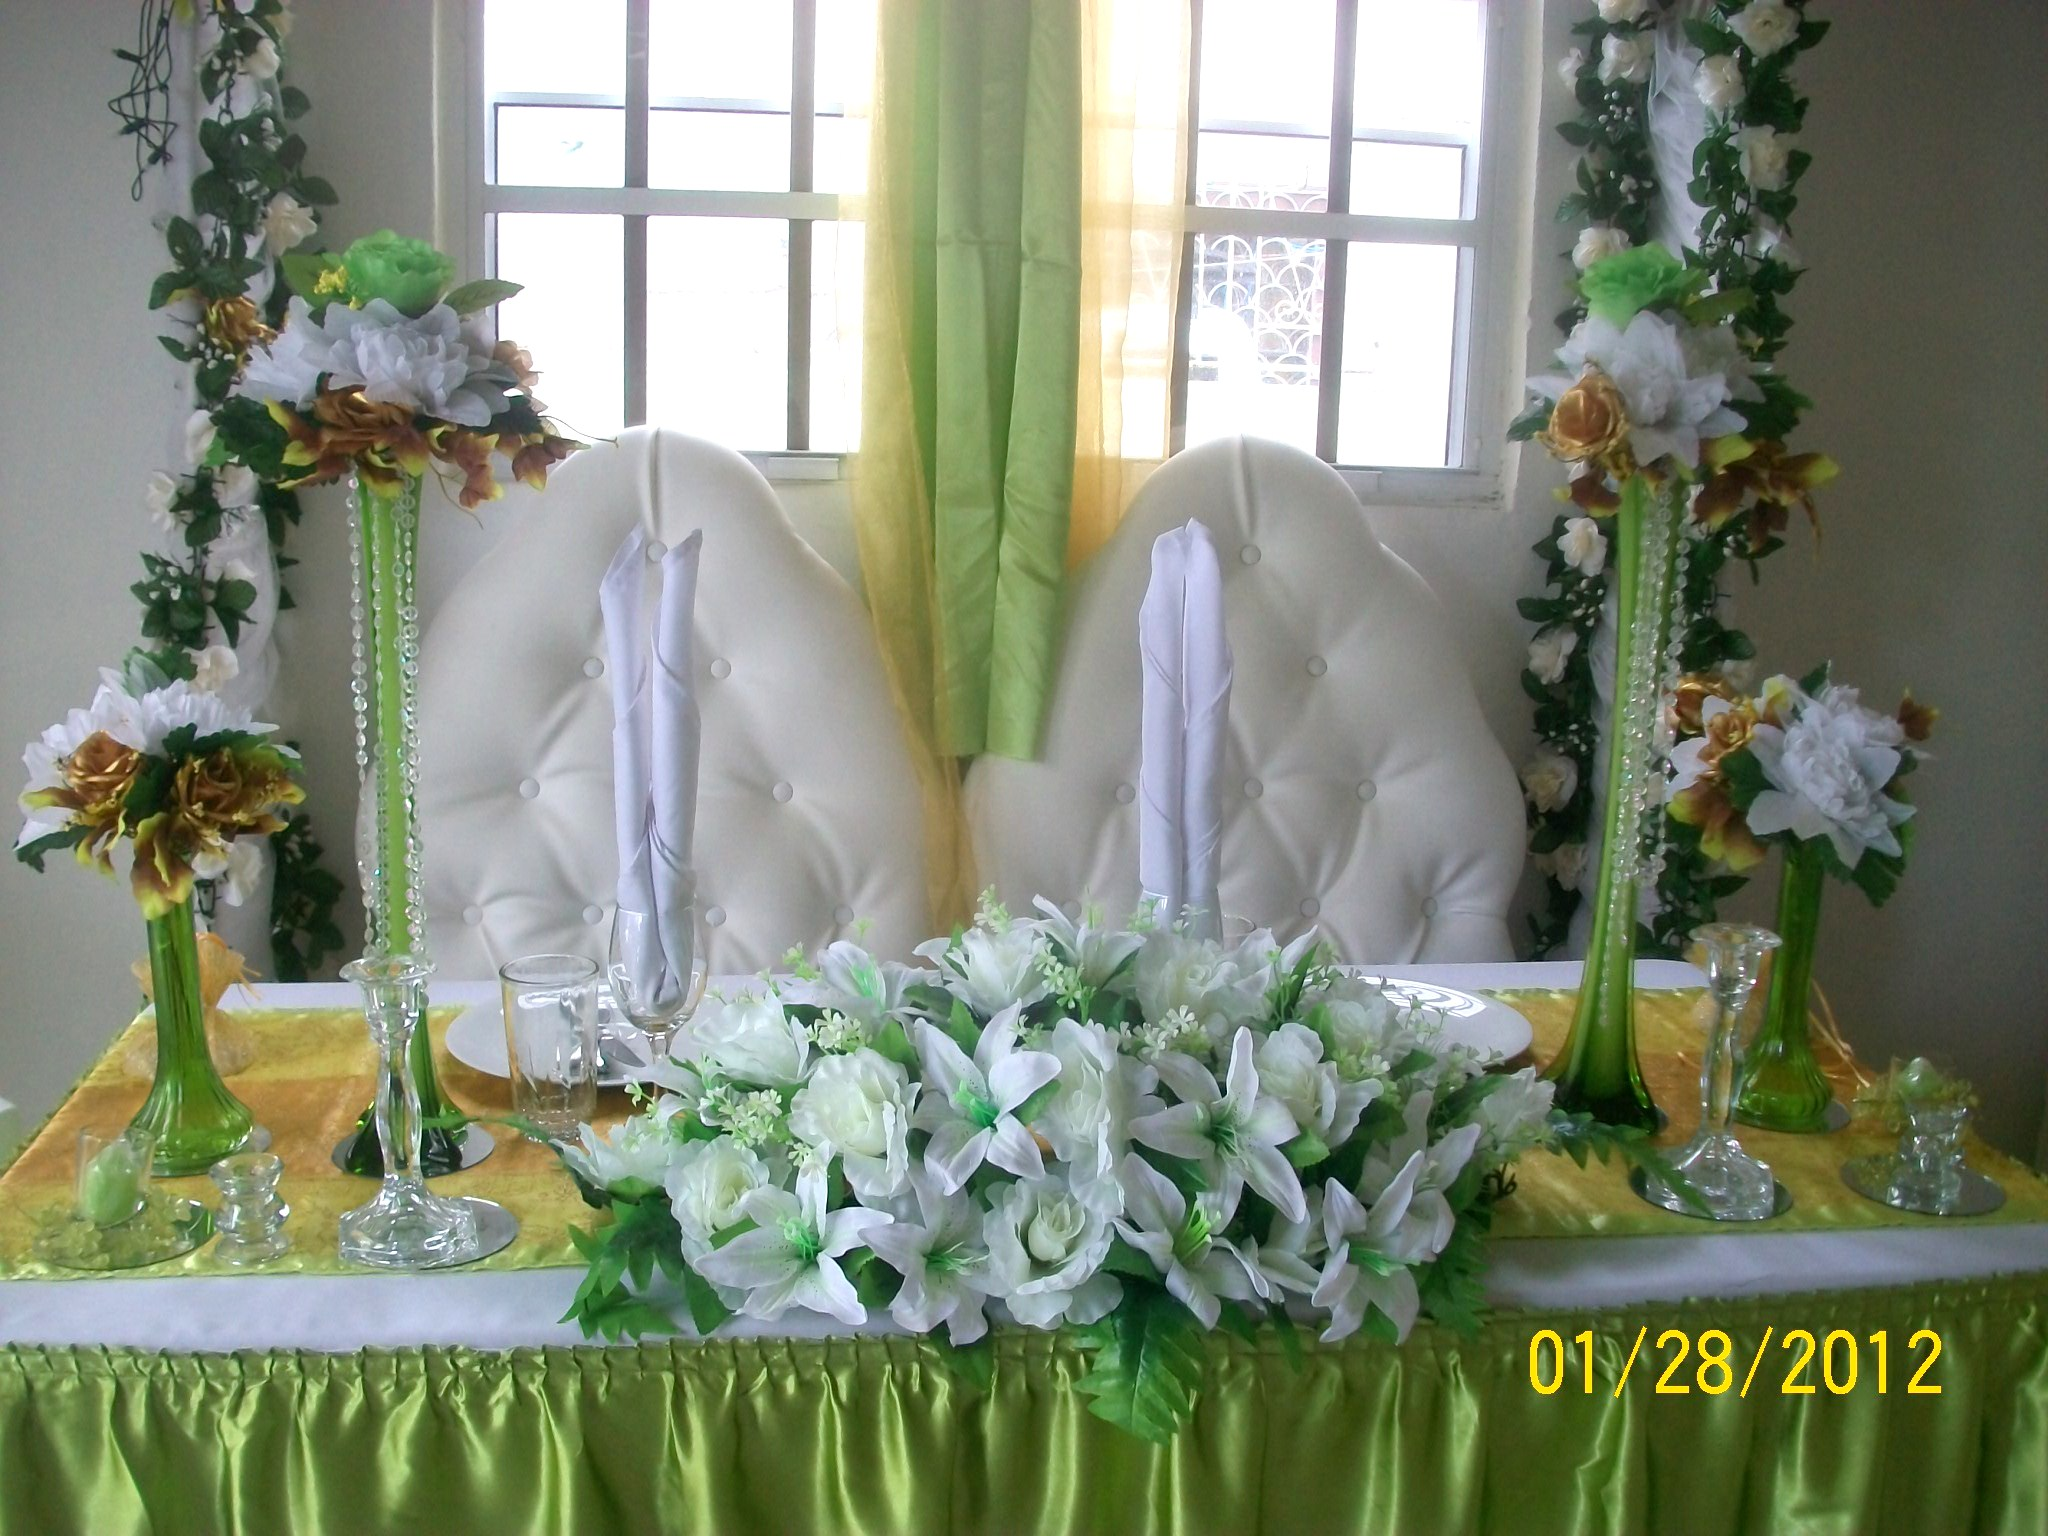 Rent right party service guyana attractions food catering rent right party rentals catering and decor tents chair tables table covers chair covers foodwarmers bridal chairs arches pedestalscolumns junglespirit Image collections